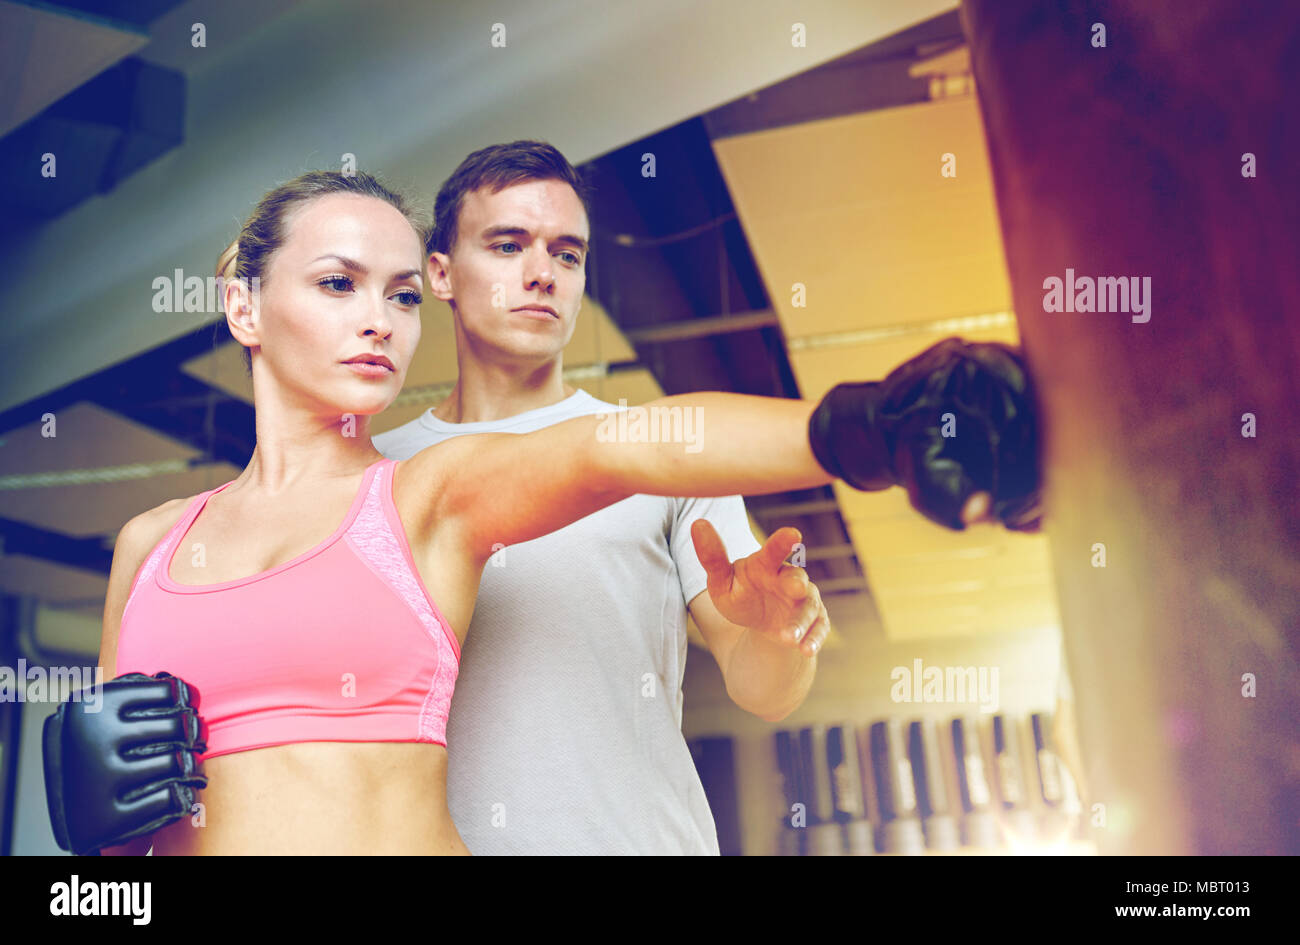 woman with personal trainer boxing in gym - Stock Image